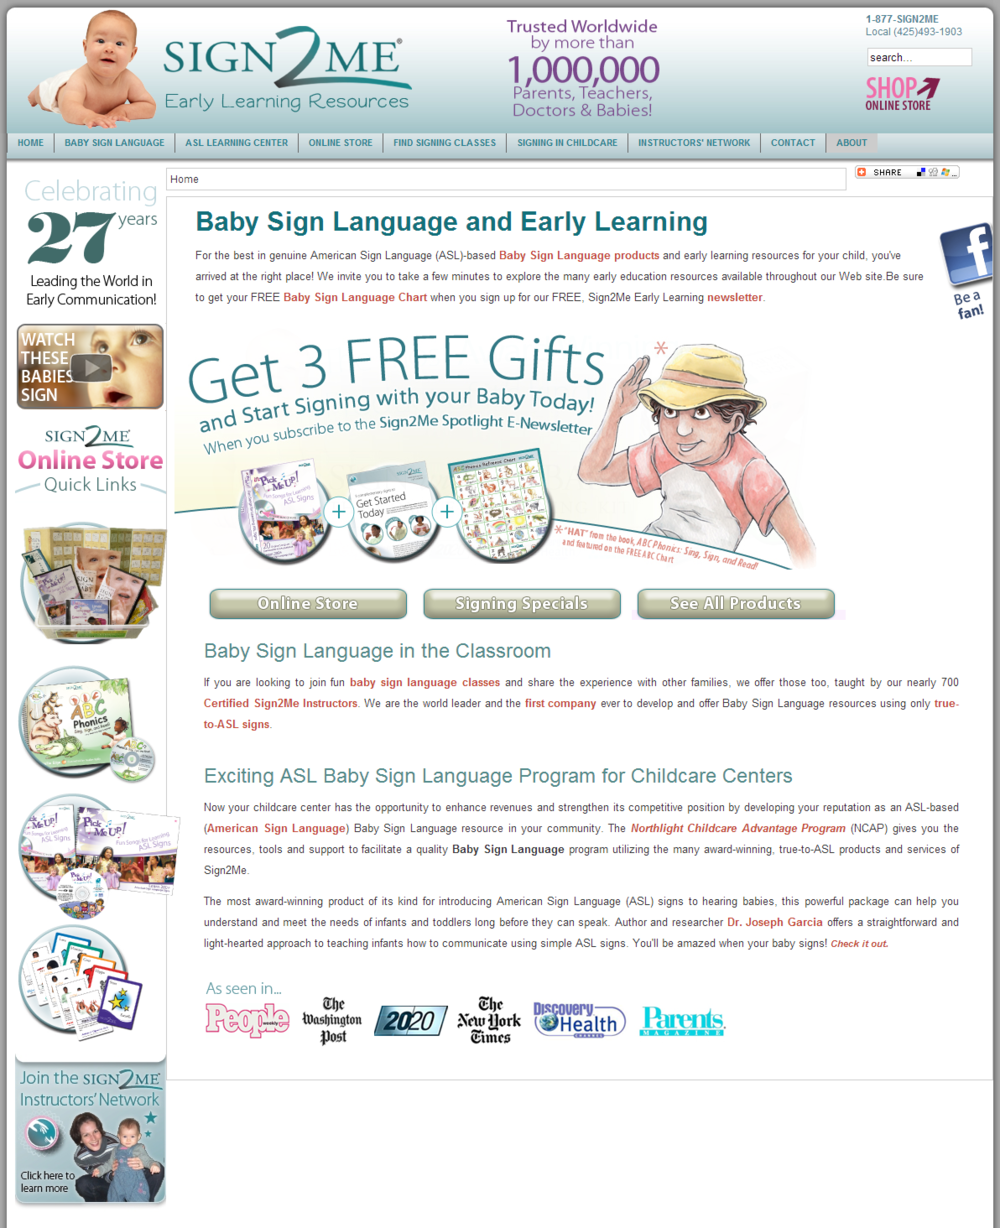 Baby Sign Language - ASL Sign Language for Babies - Sign2Me.png